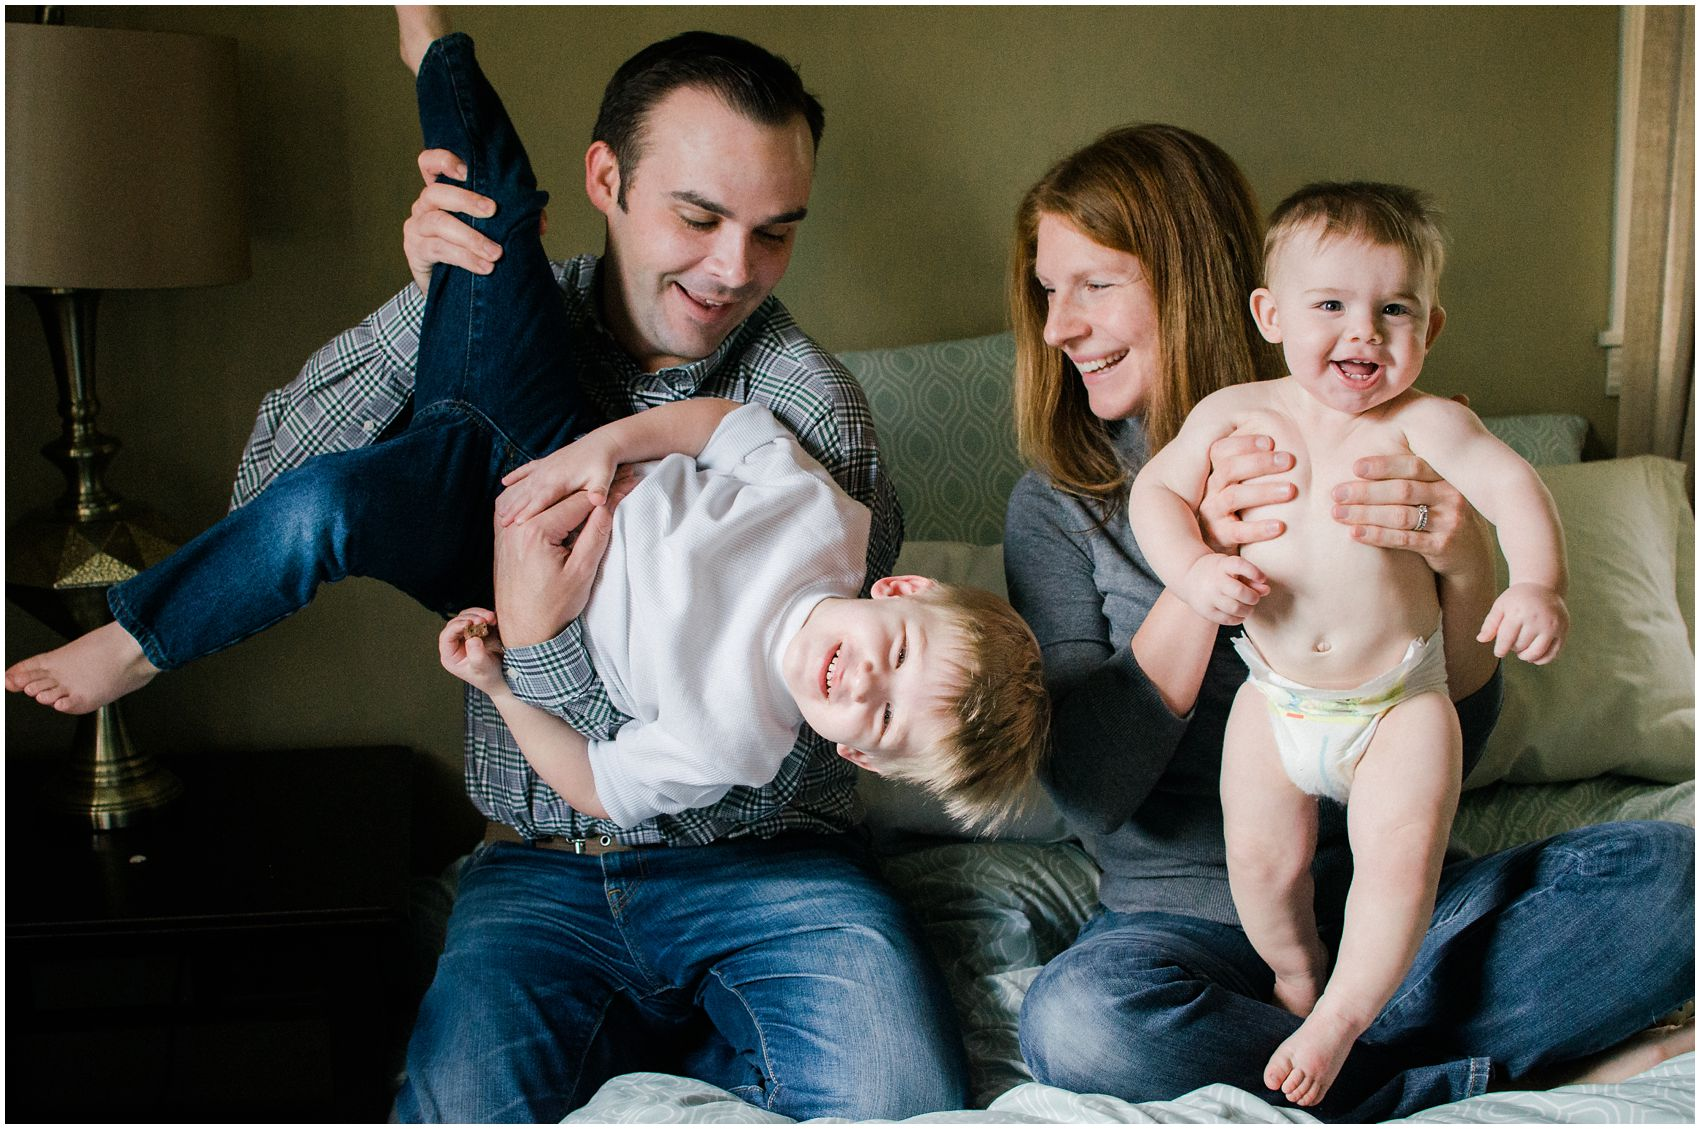 family photography of parents and two little kids at home